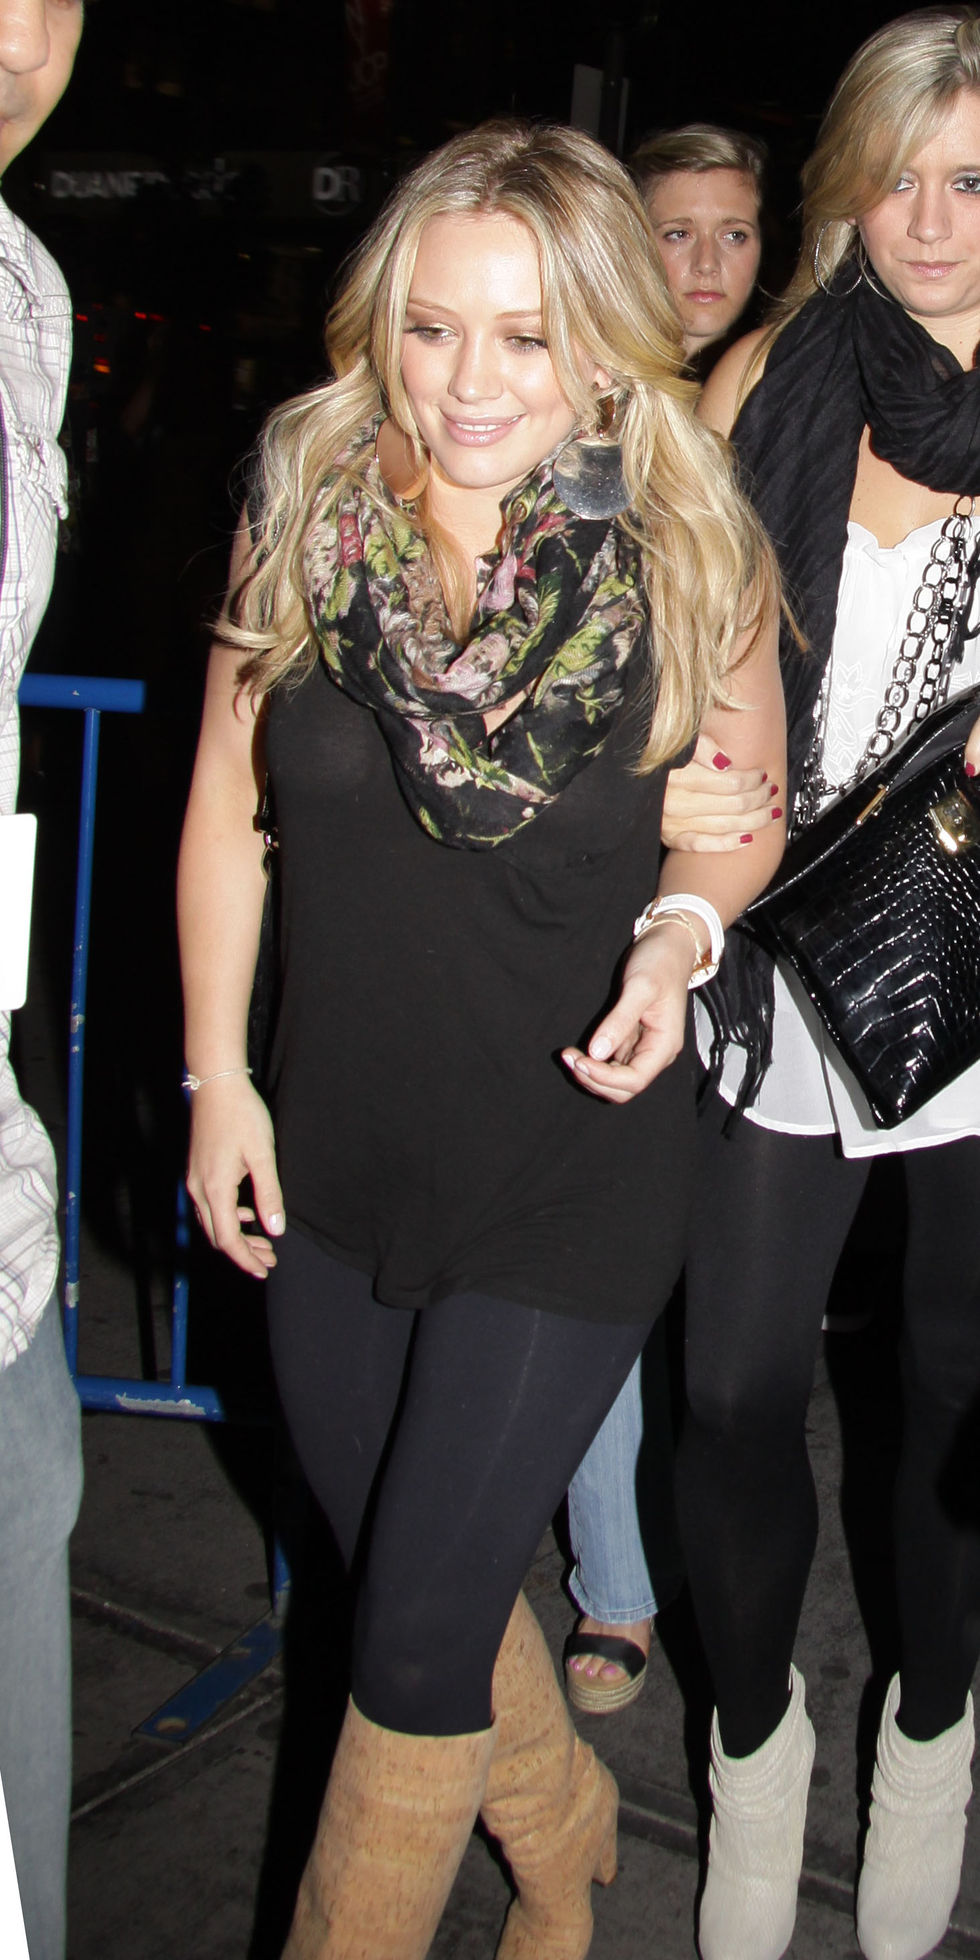 hilary-duff-at-britney-spears-concert-in-new-york-01